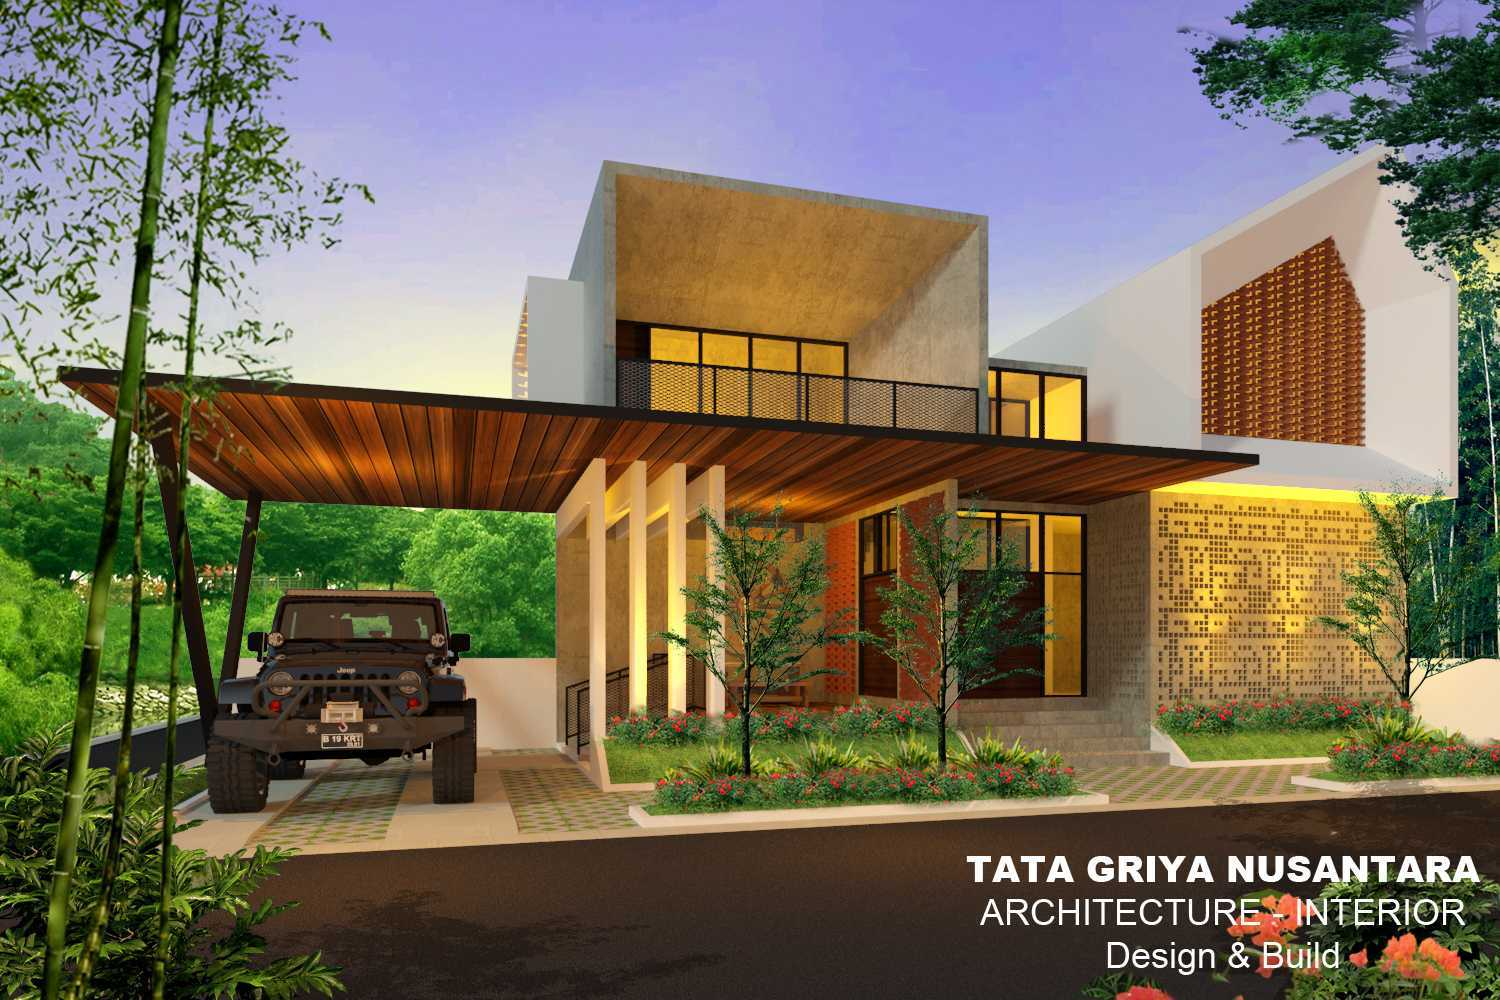 Jasa Design and Build tata griya nusantara di Pemalang